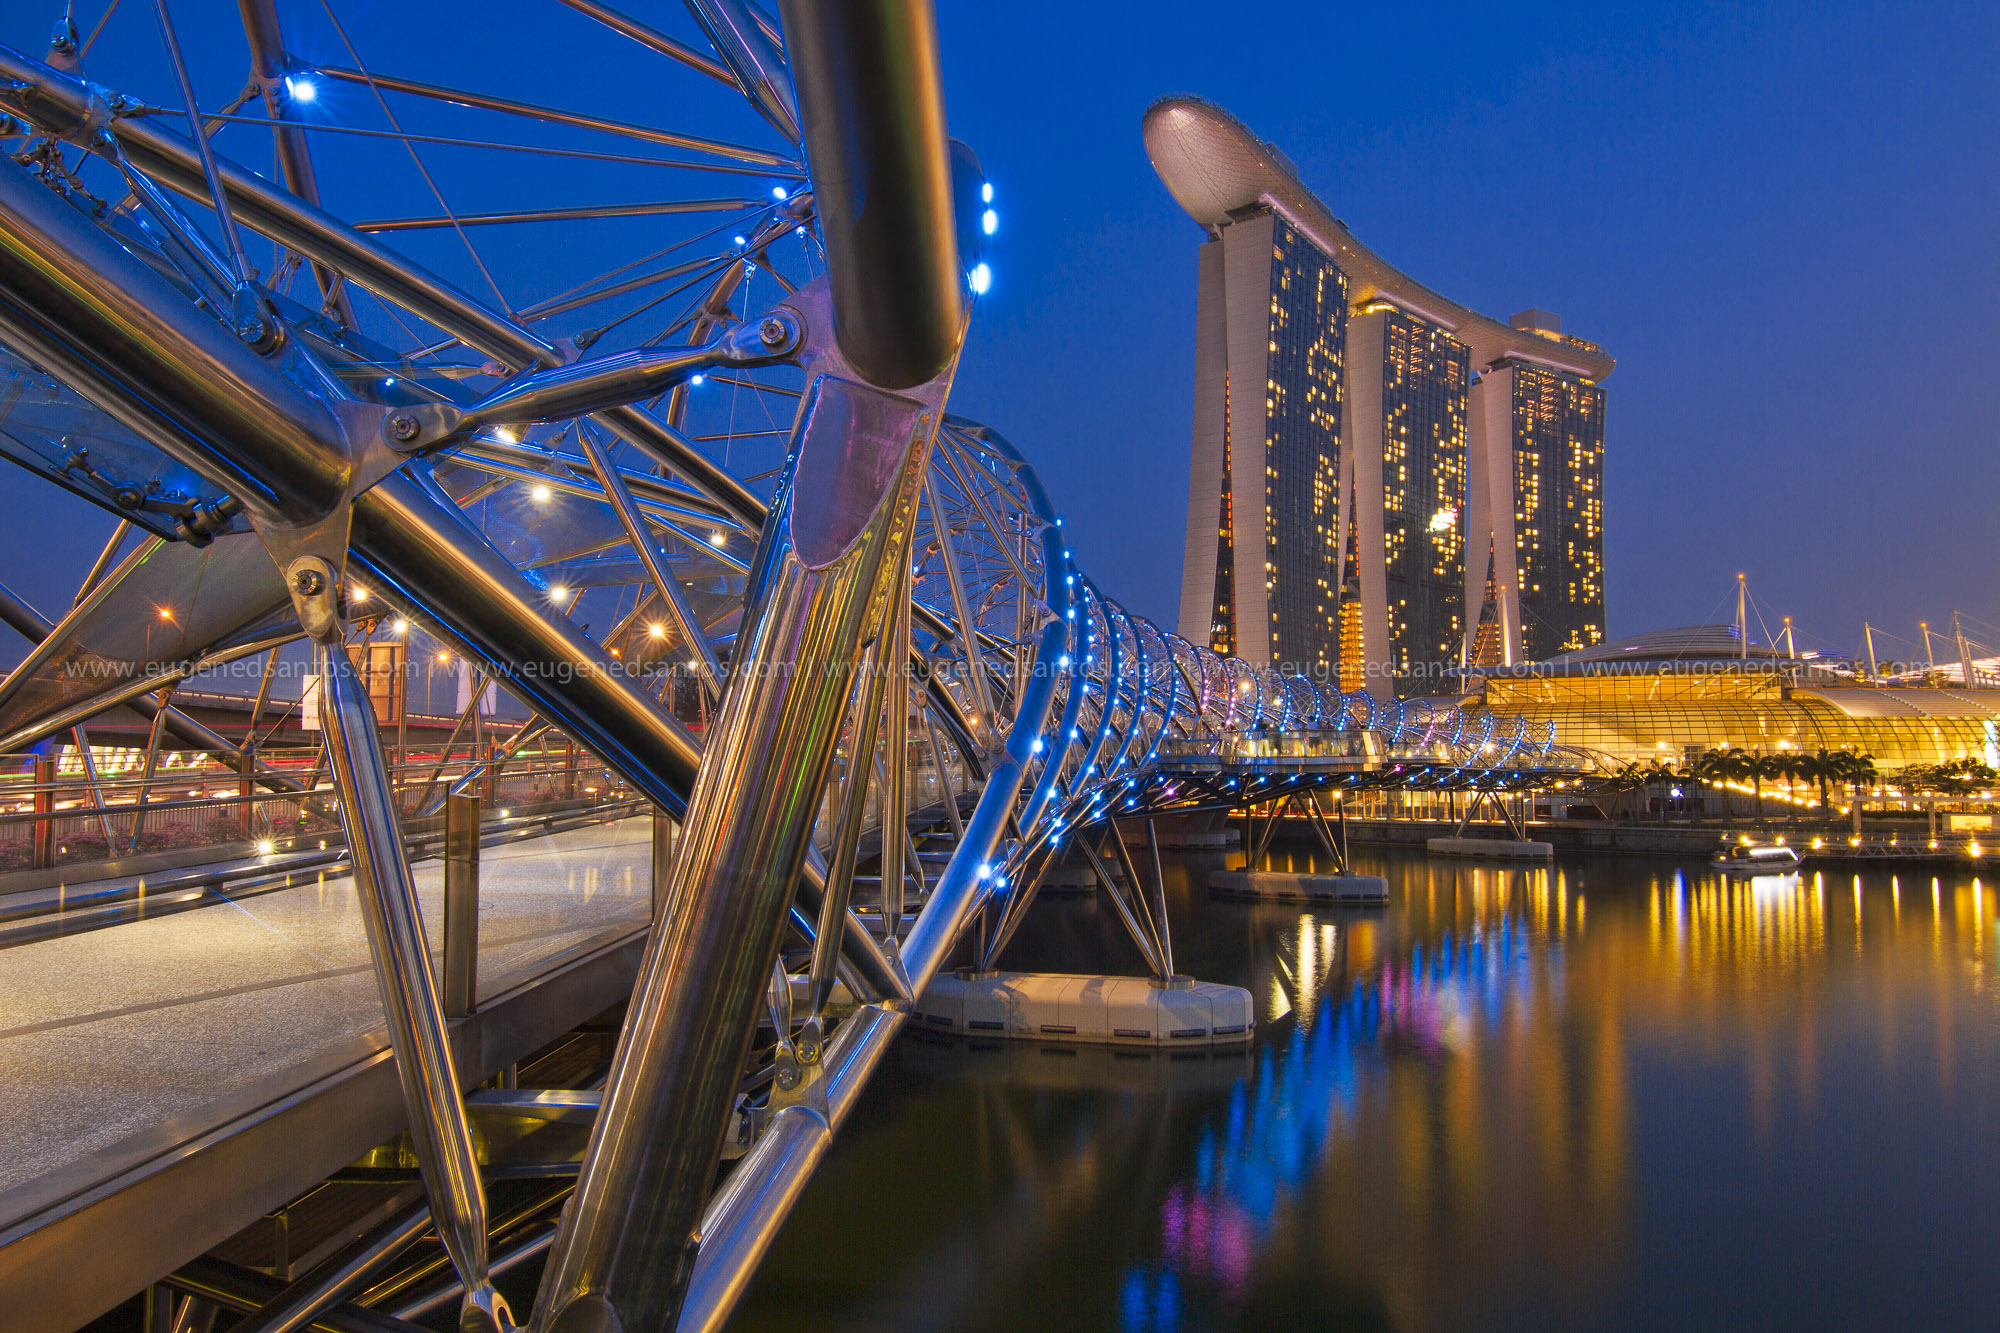 Helix Bridge at Marina Bay Sands